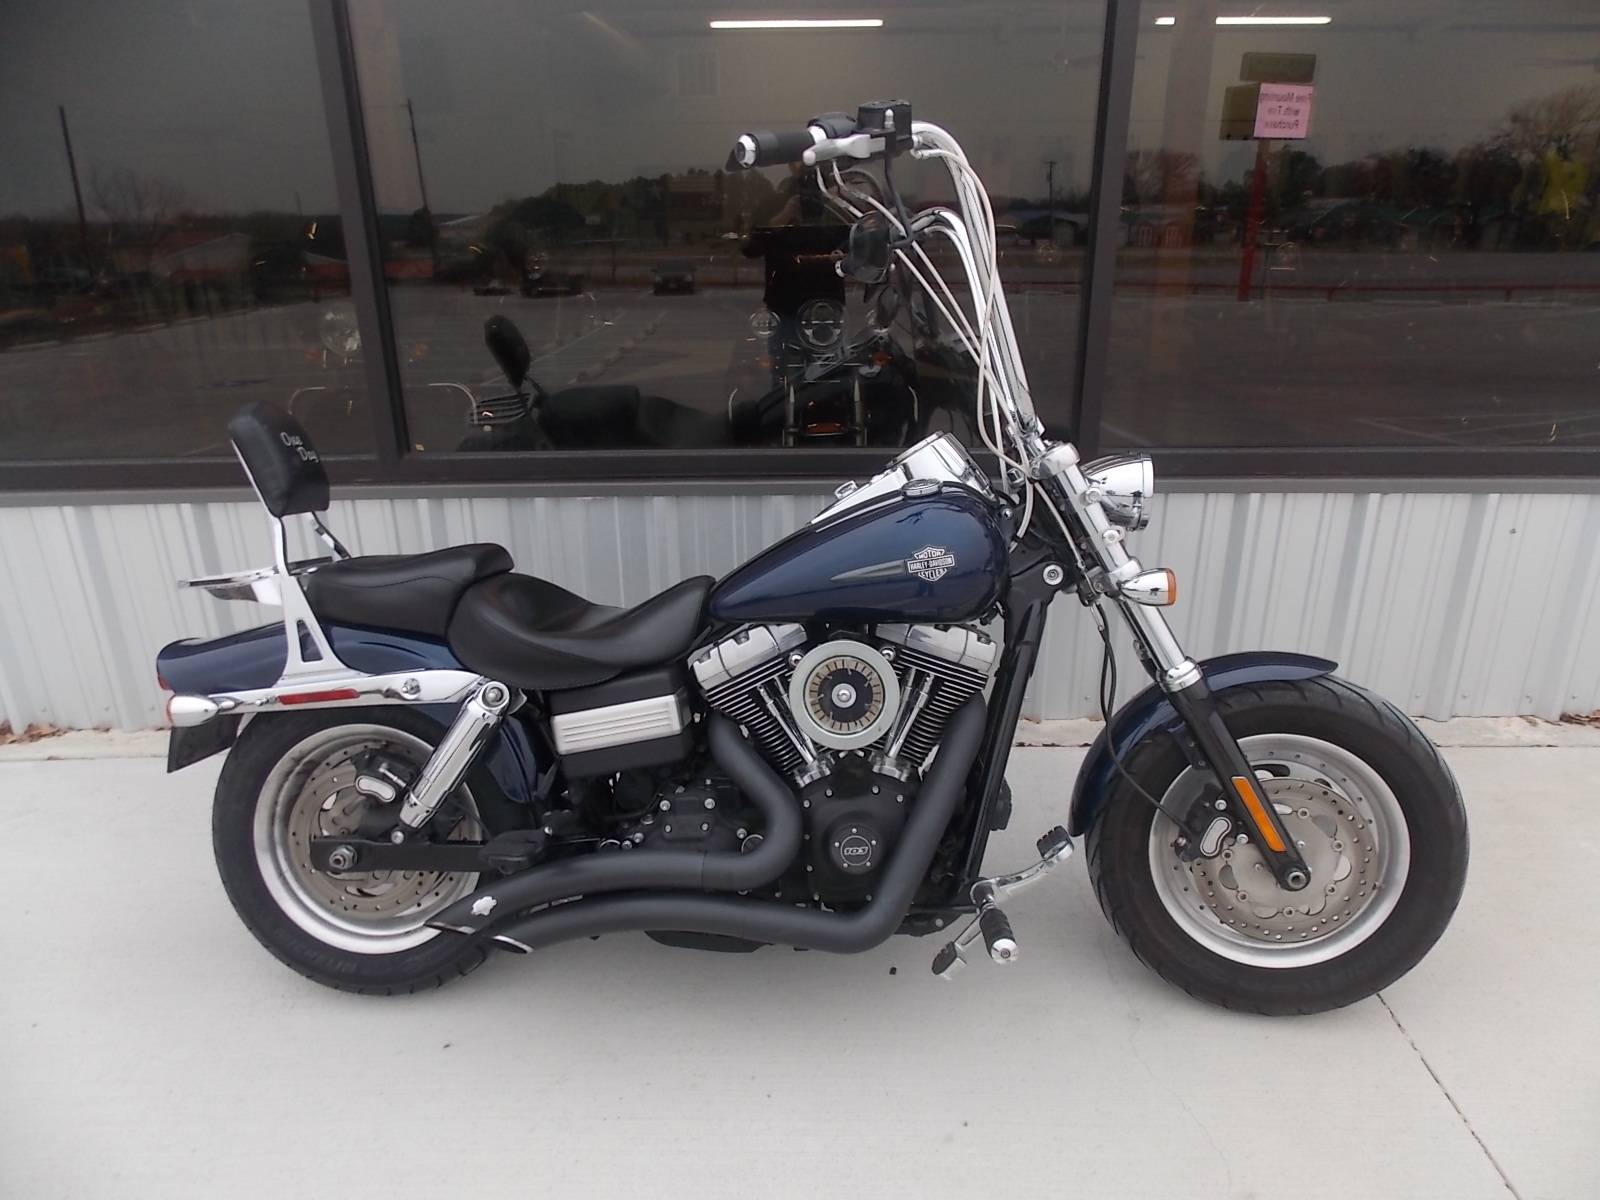 Harley Davidson 2015 >> Used 2012 Harley-Davidson Dyna® Fat Bob® Motorcycles in Springtown, TX | Stock Number: N/A ...